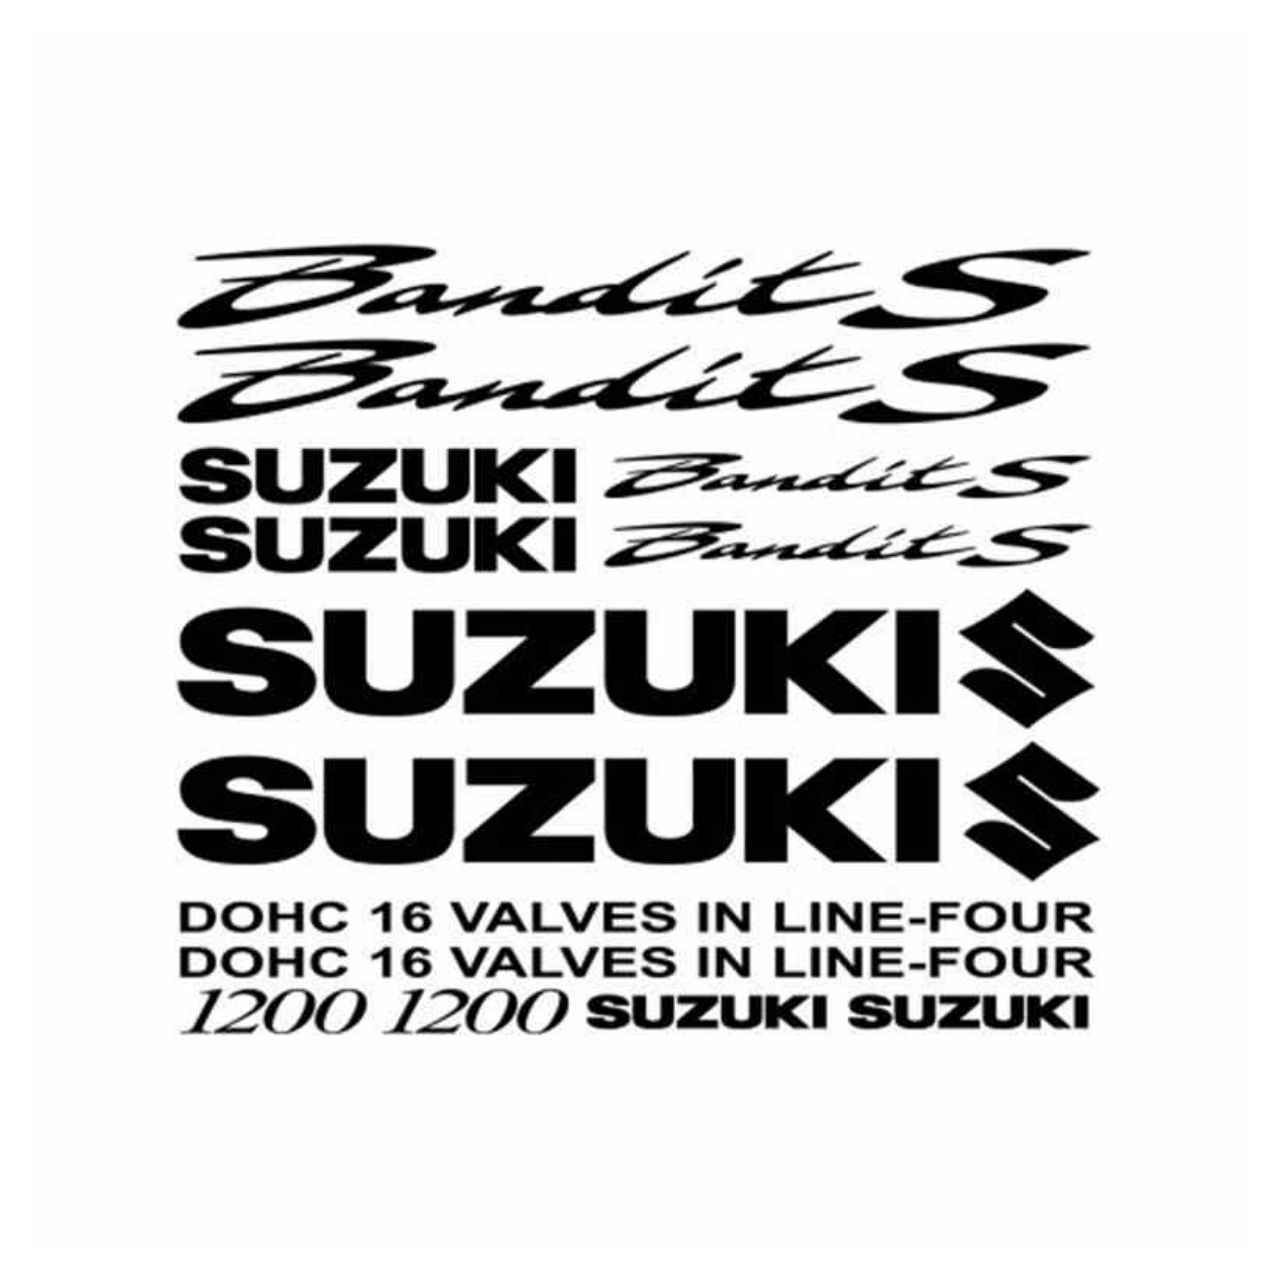 Suzuki Bandit S Motorbike Decals Belly Pan Fairings Helmet Motorcycle Stickers